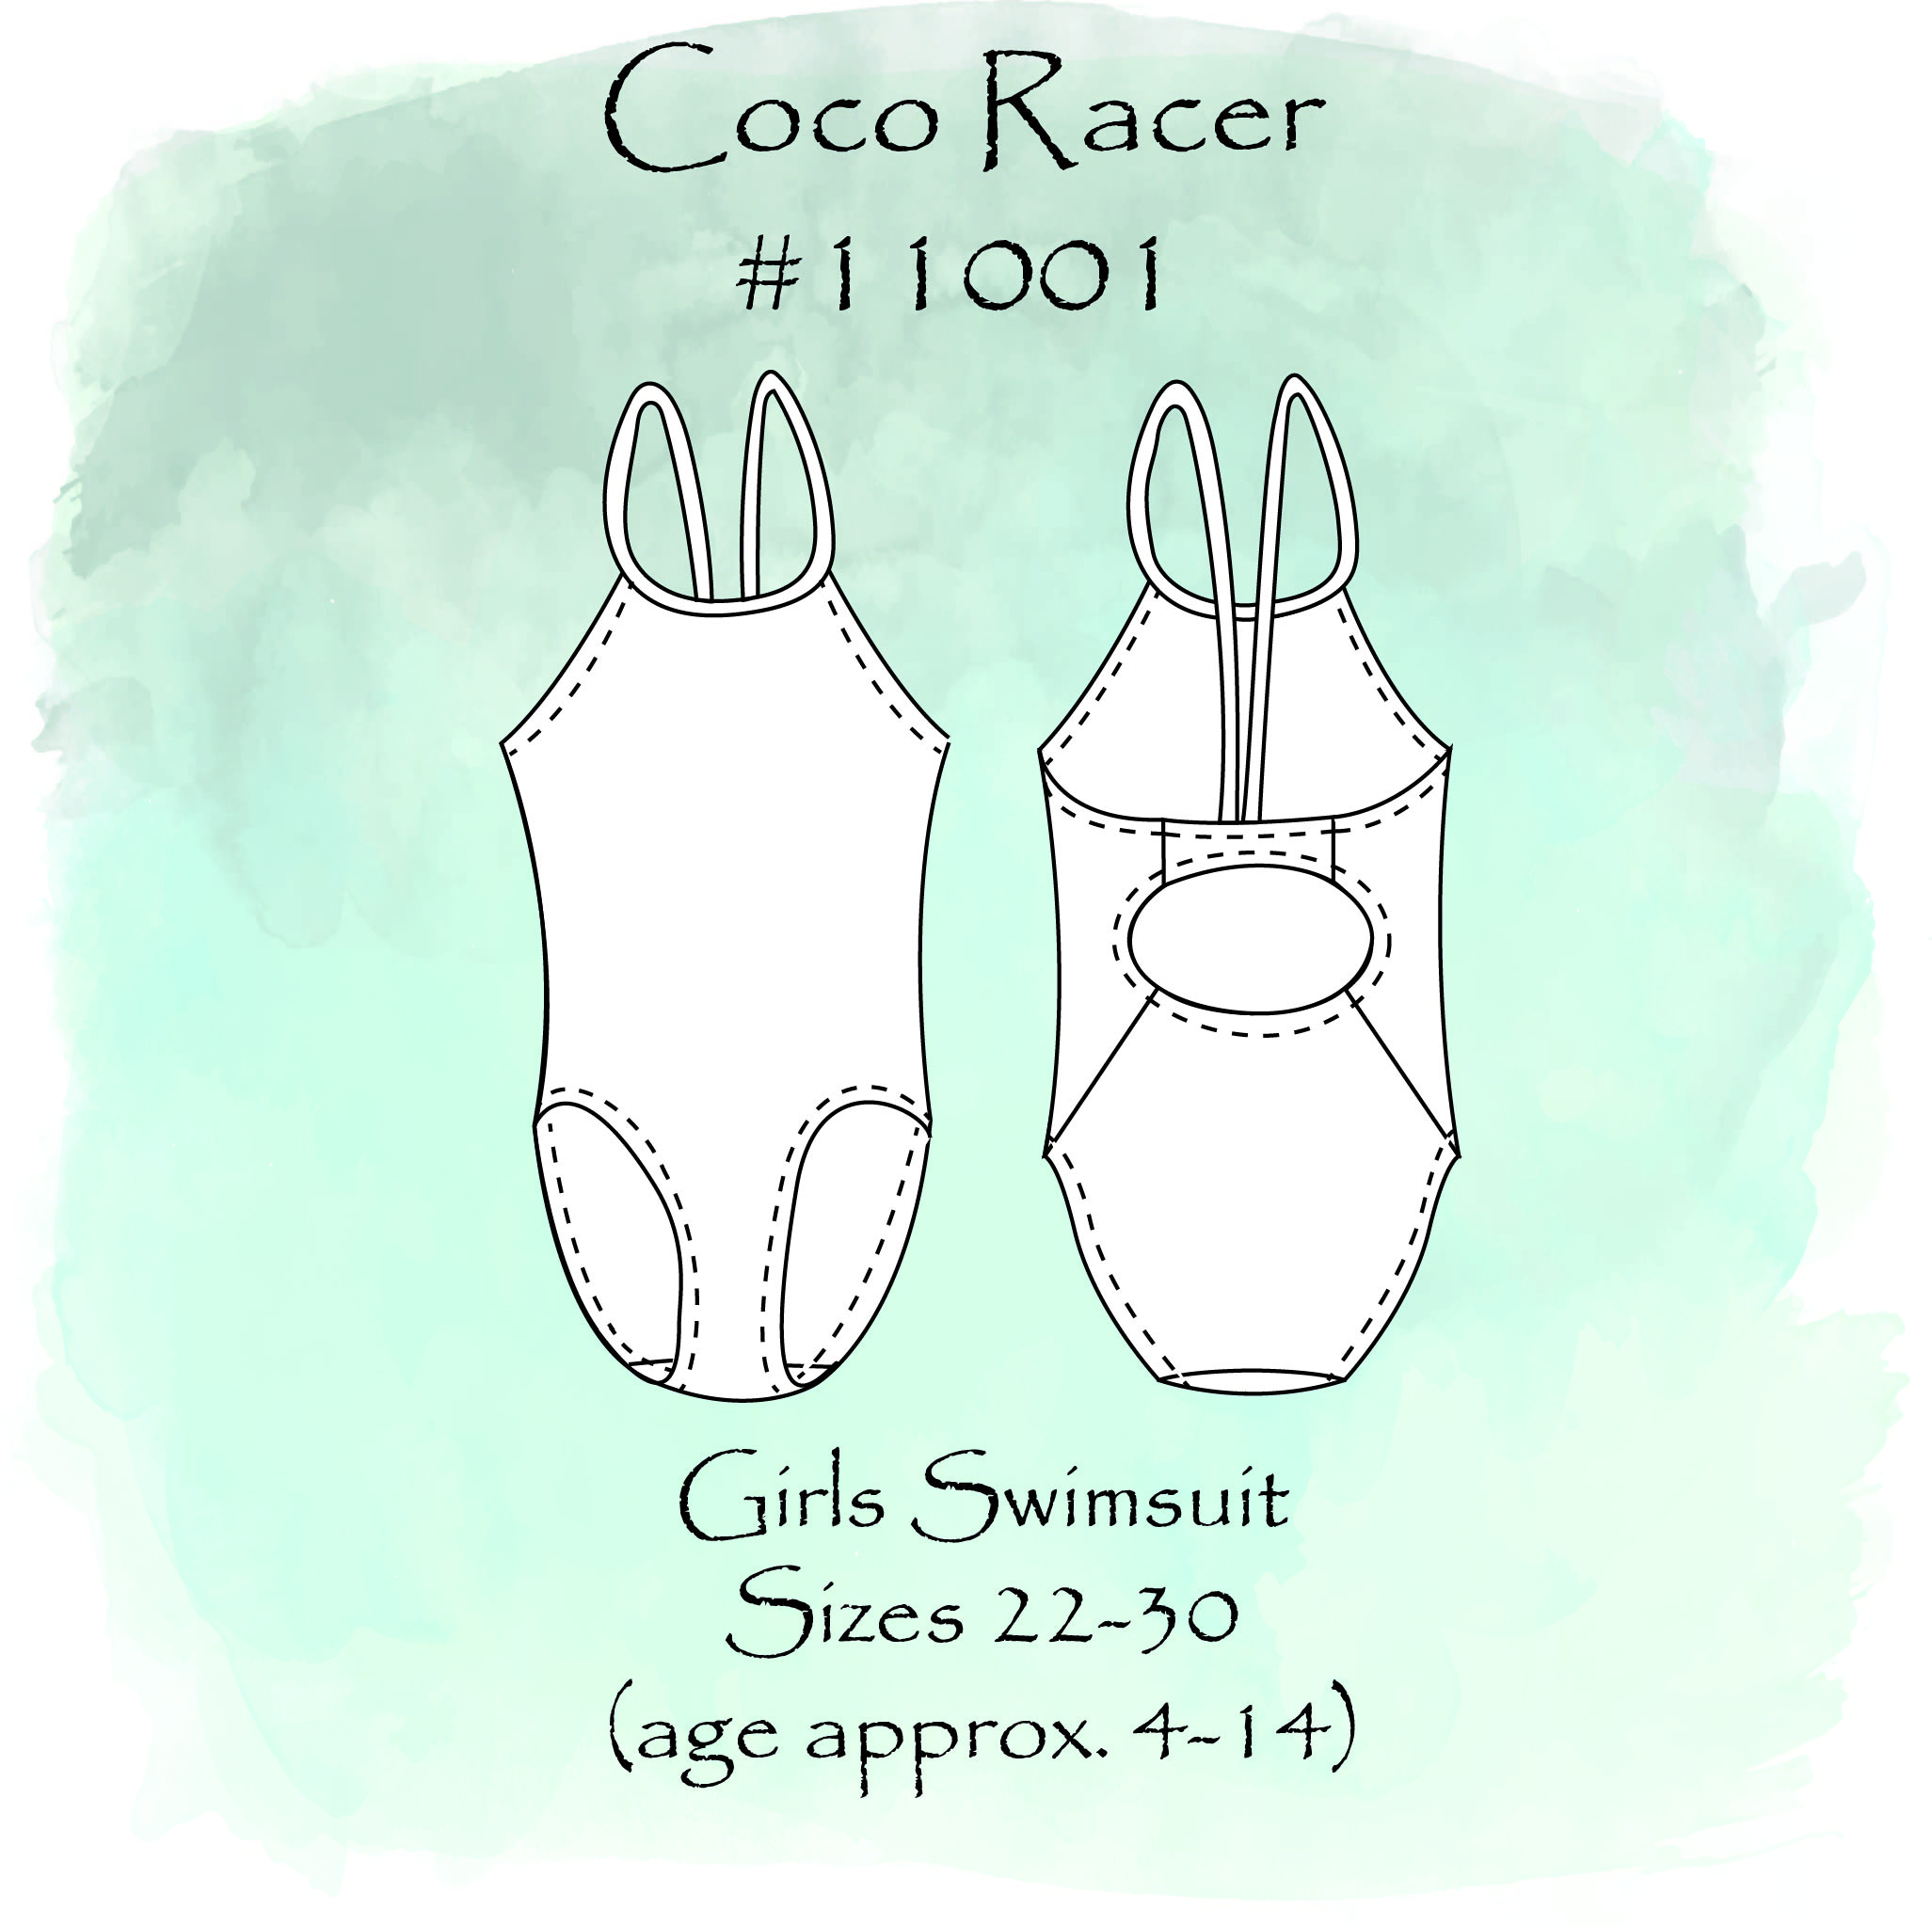 Coco Racer